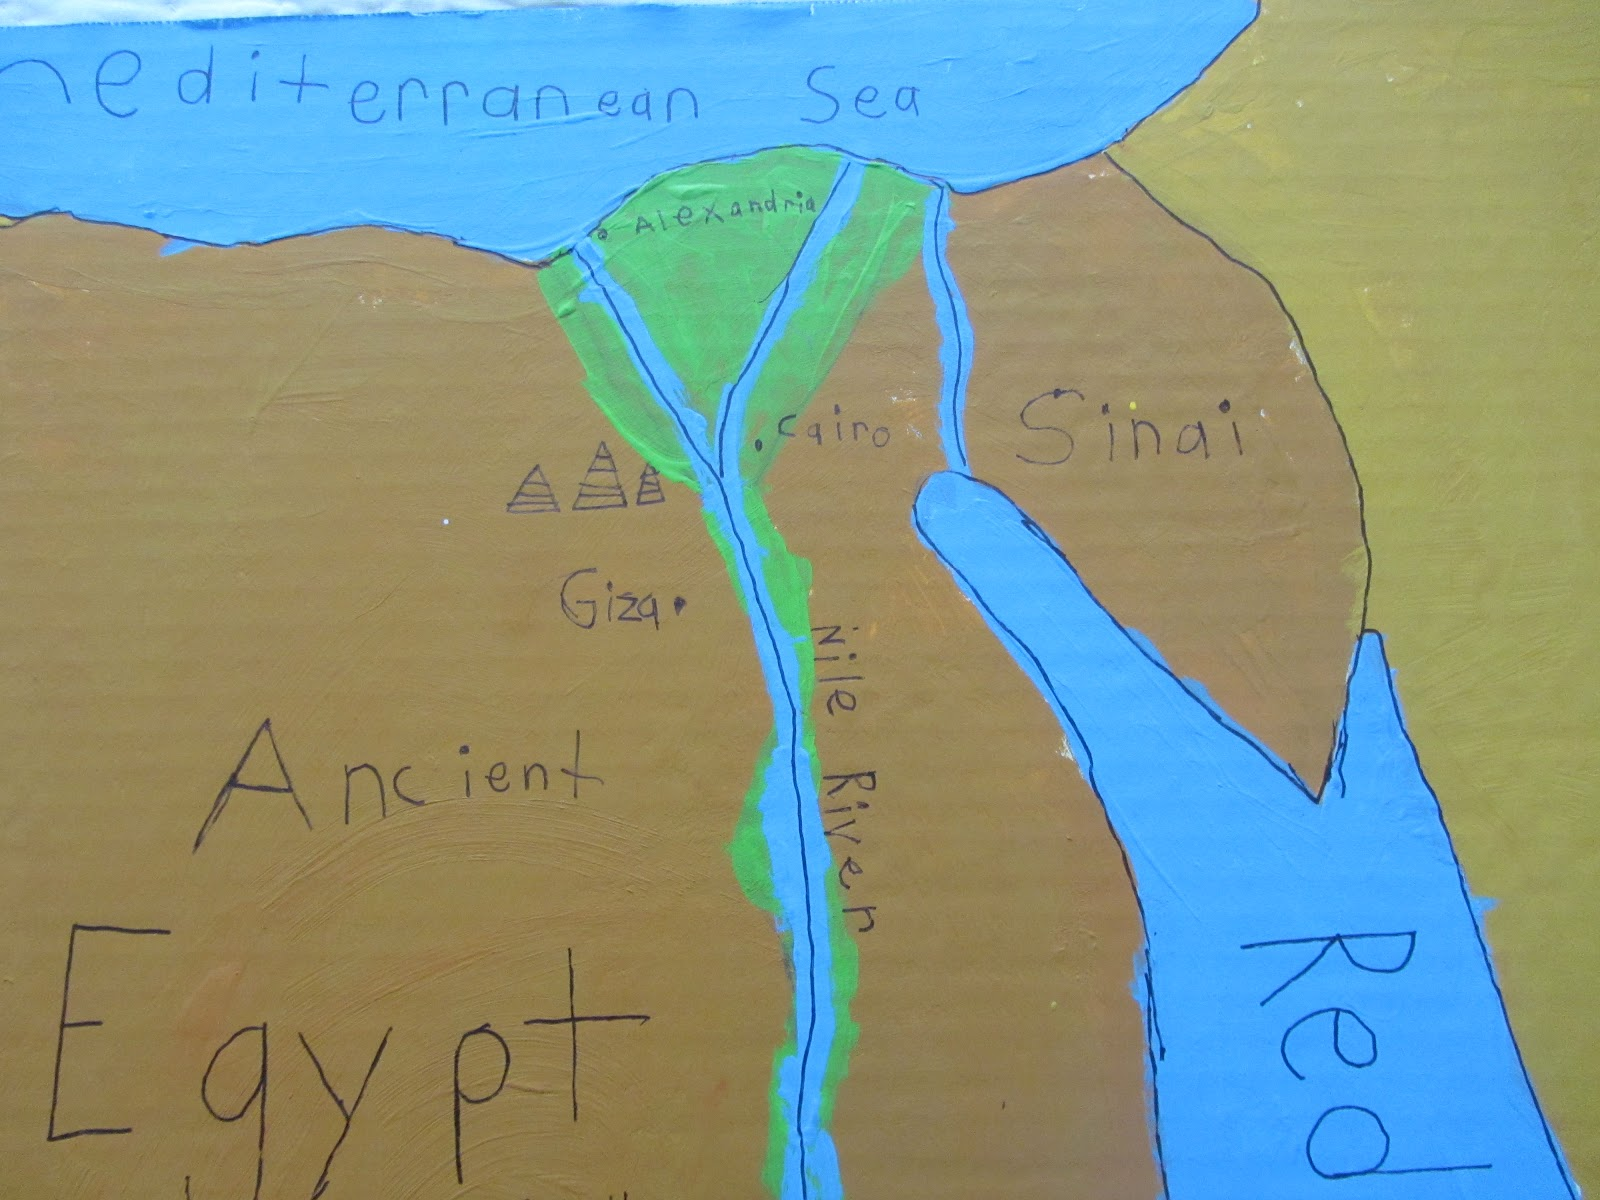 The Unlikely Homeschool: Ancient Egypt Unit Study: Map of Egypt